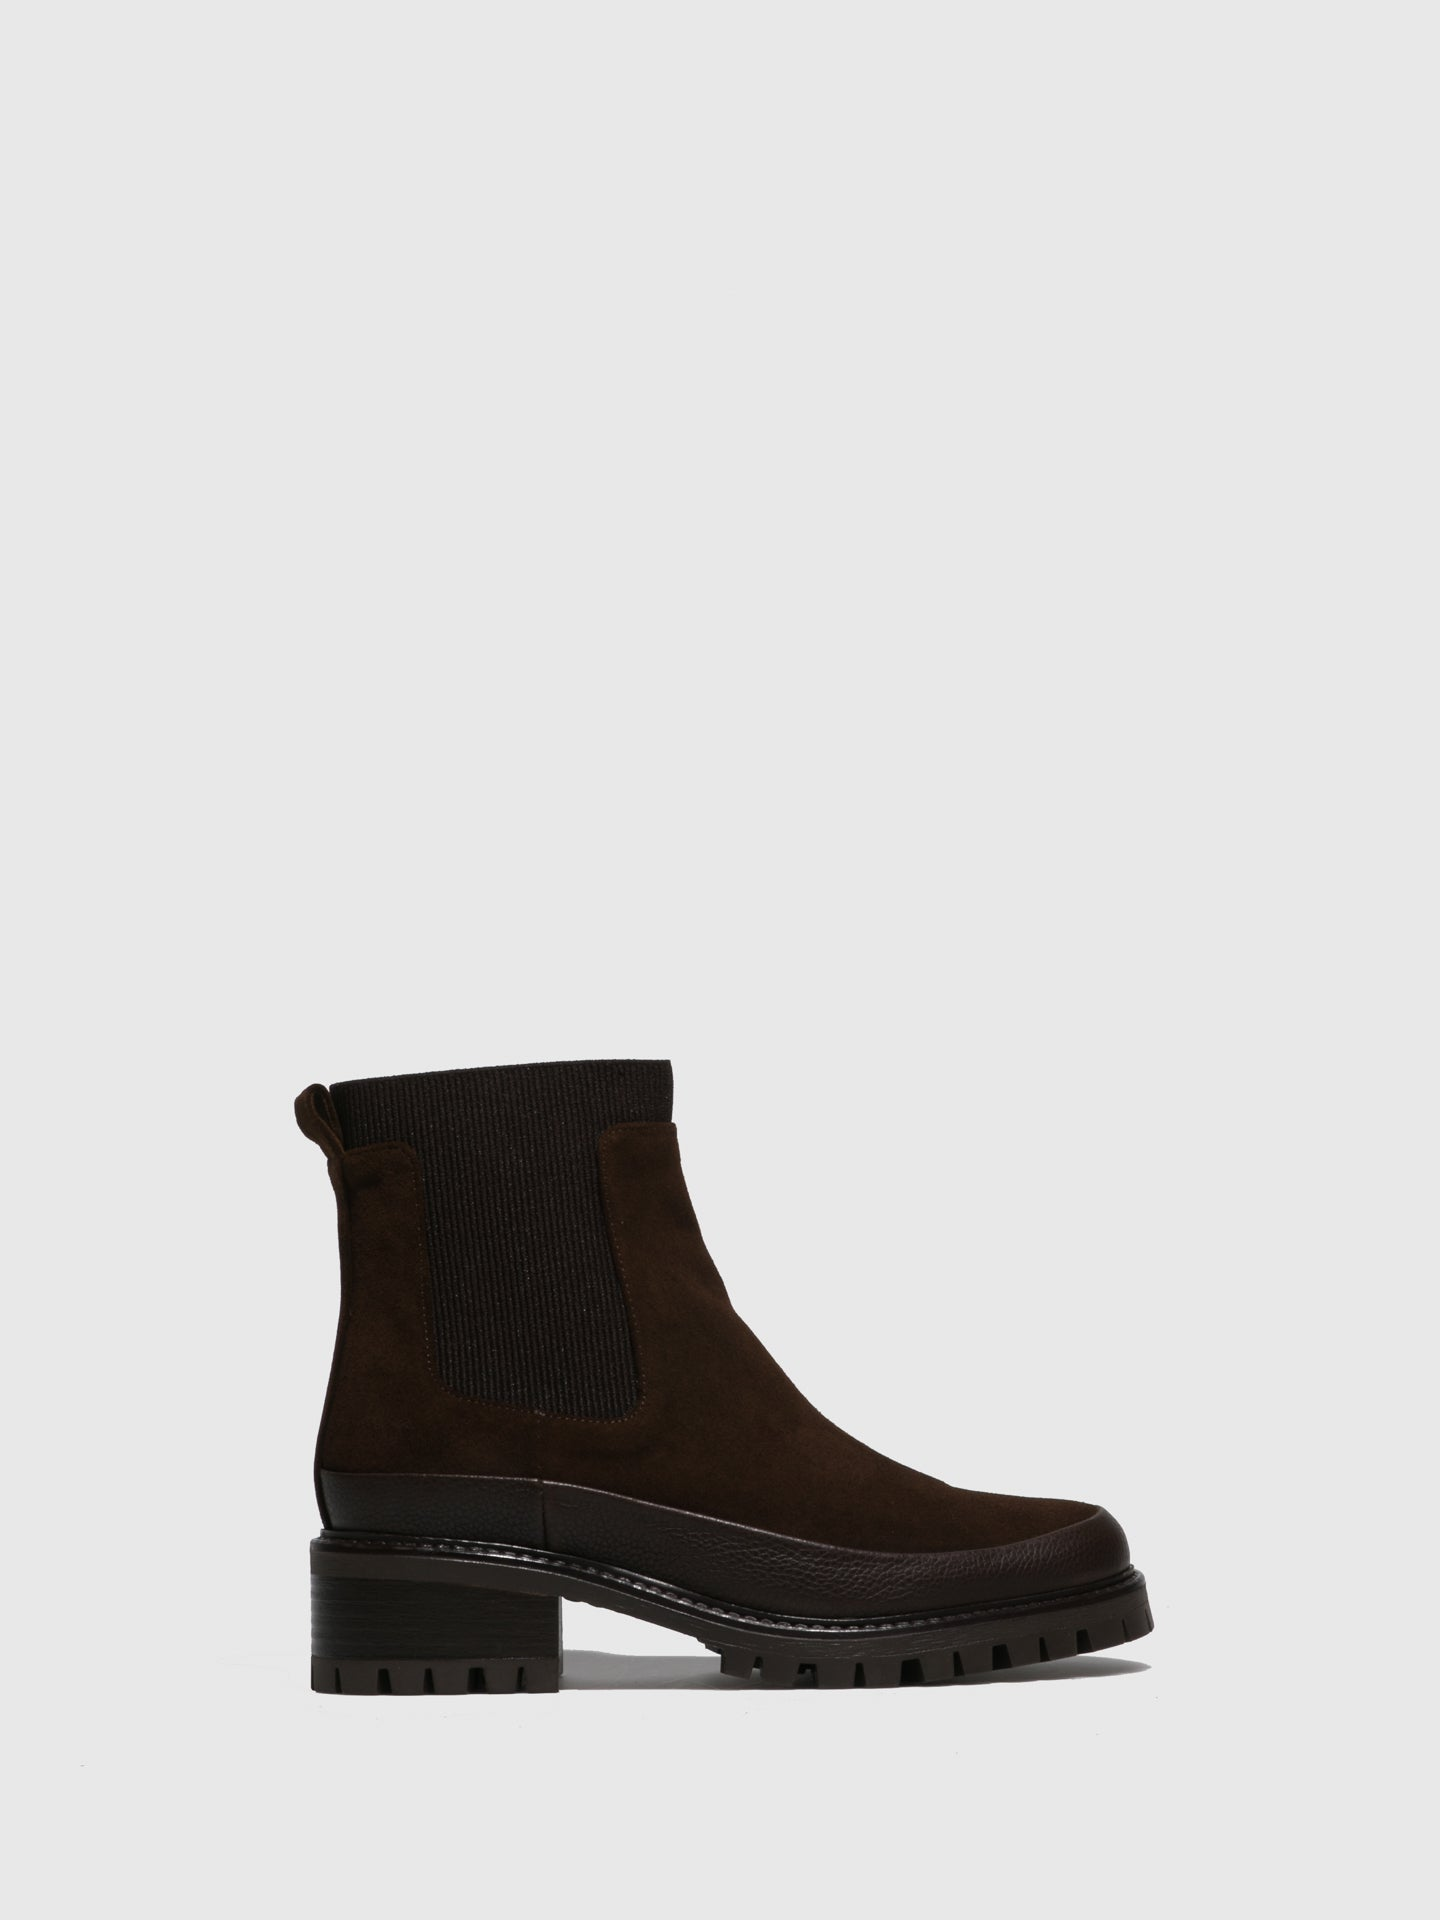 JJ Heitor Brown Leather Elasticated Ankle Boots